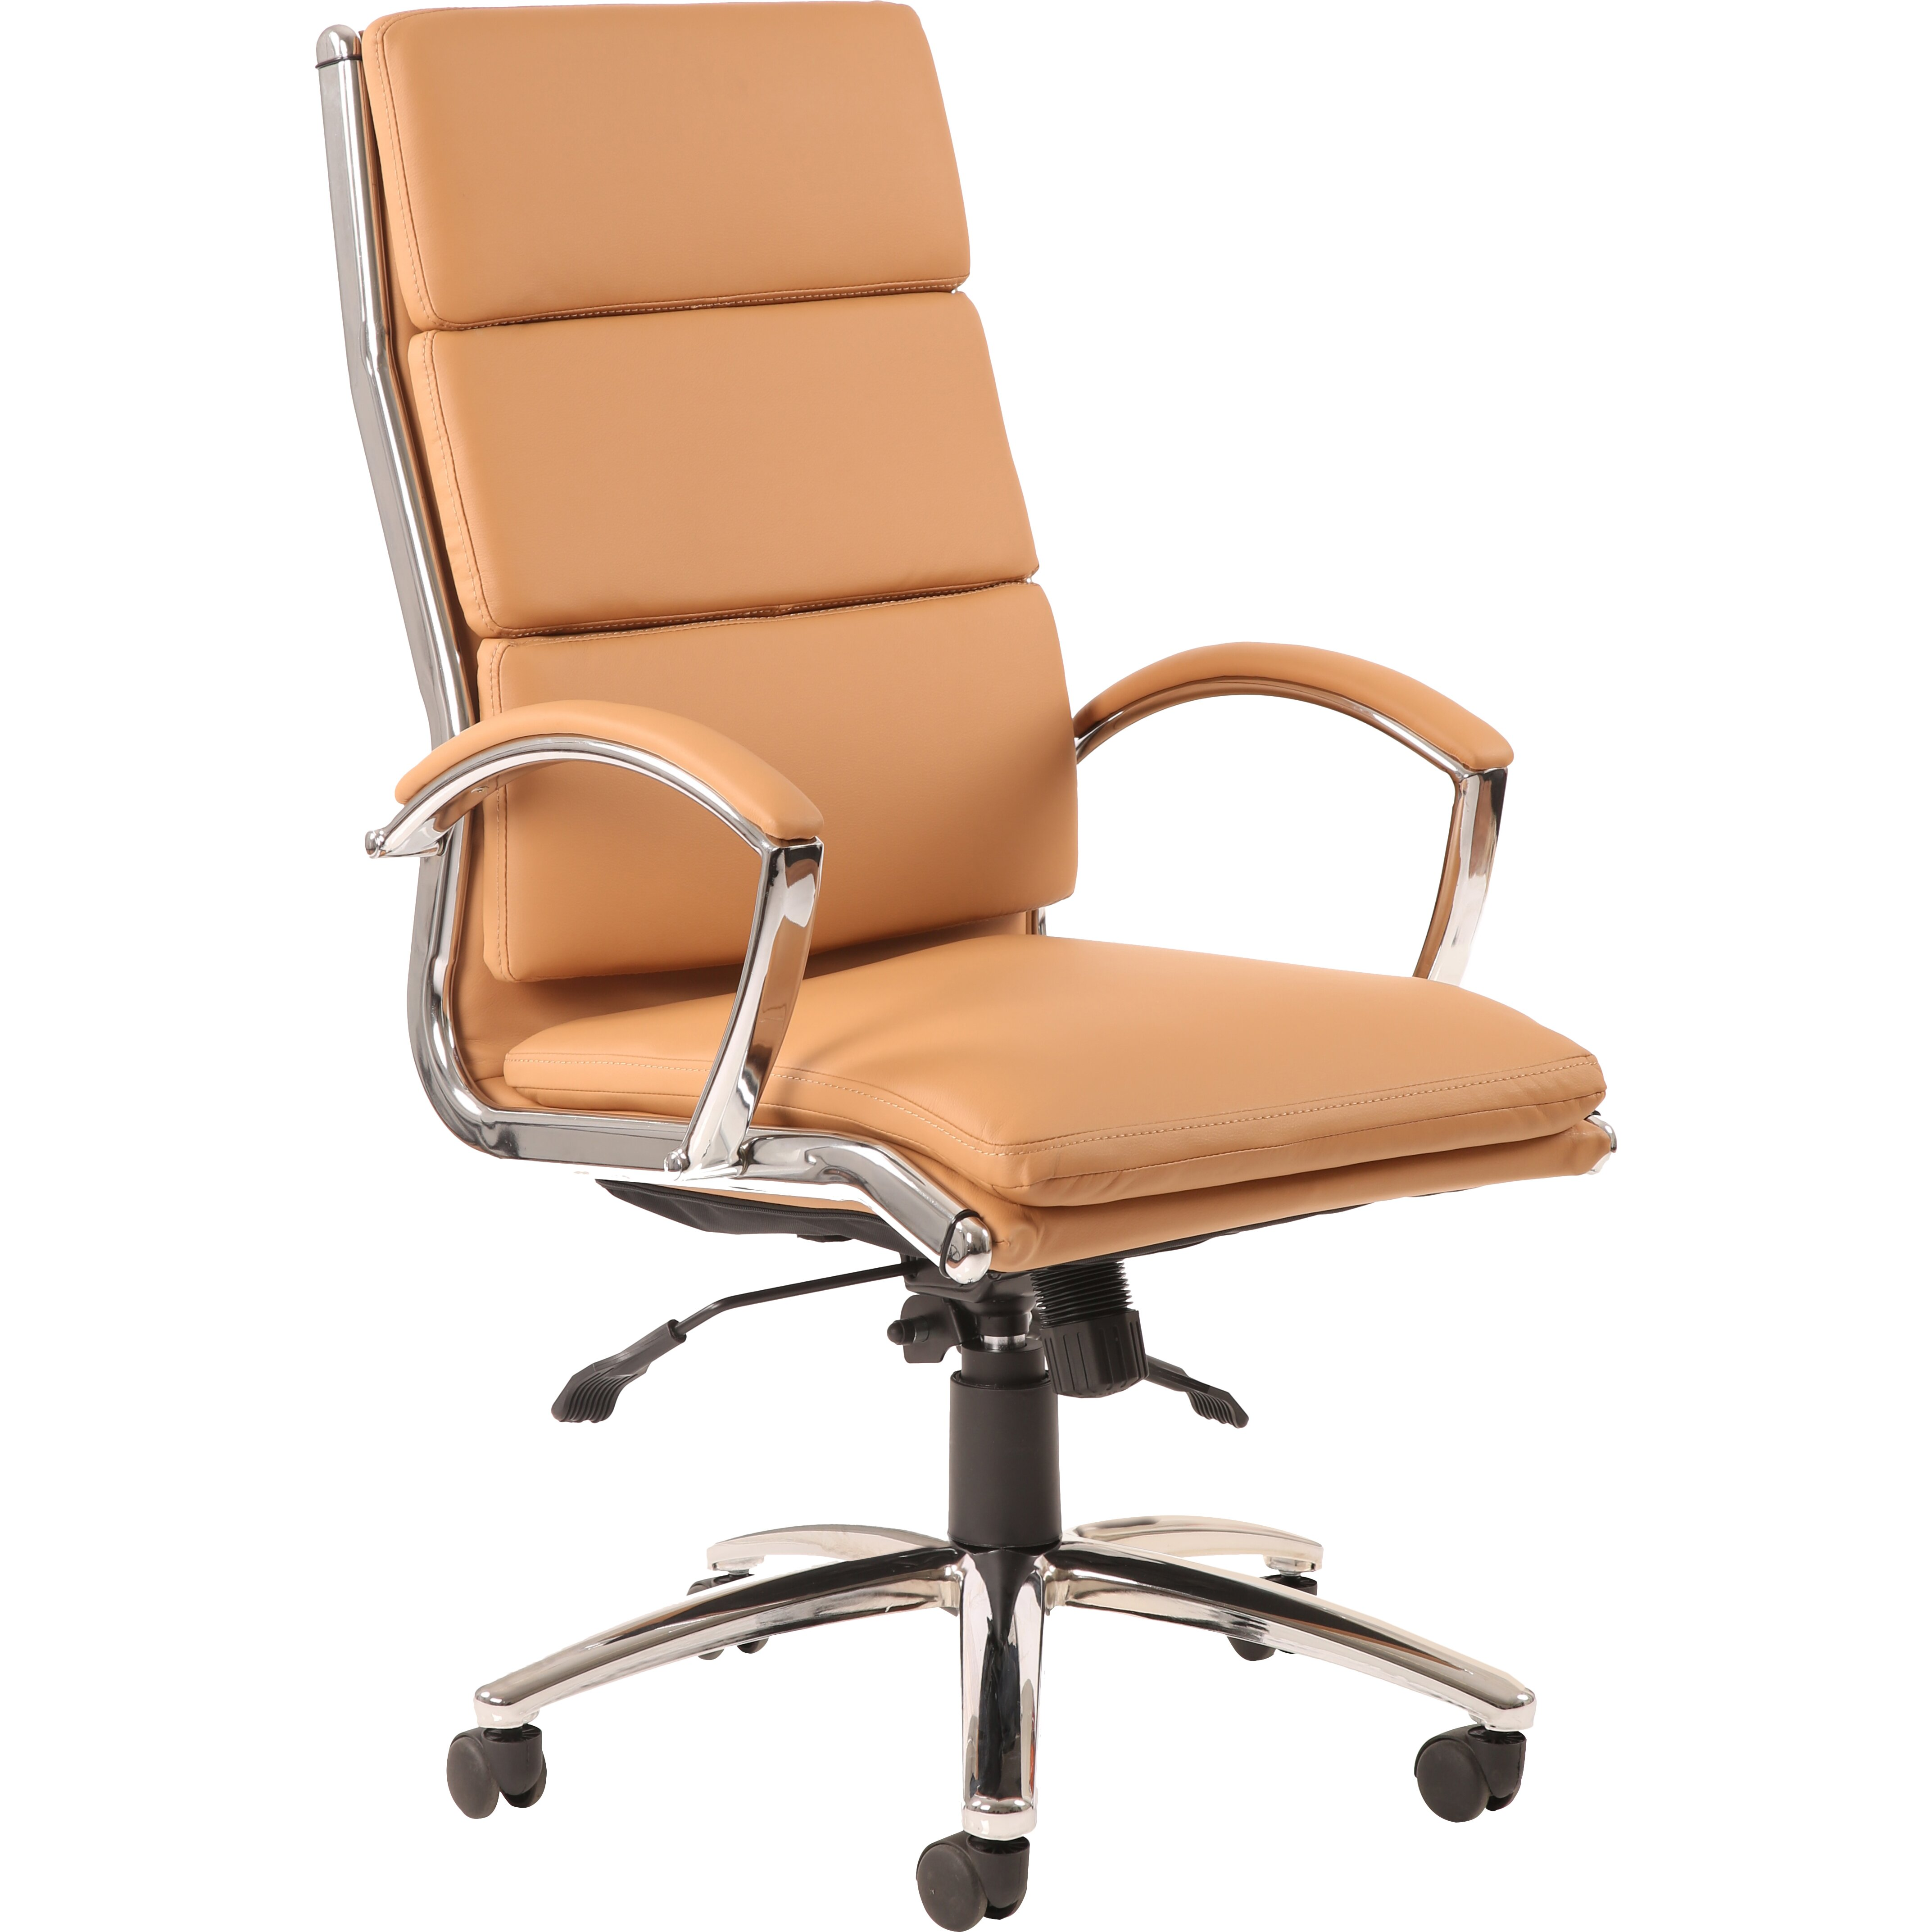 Home & Haus Alcatraz High Back Leather Desk Chair